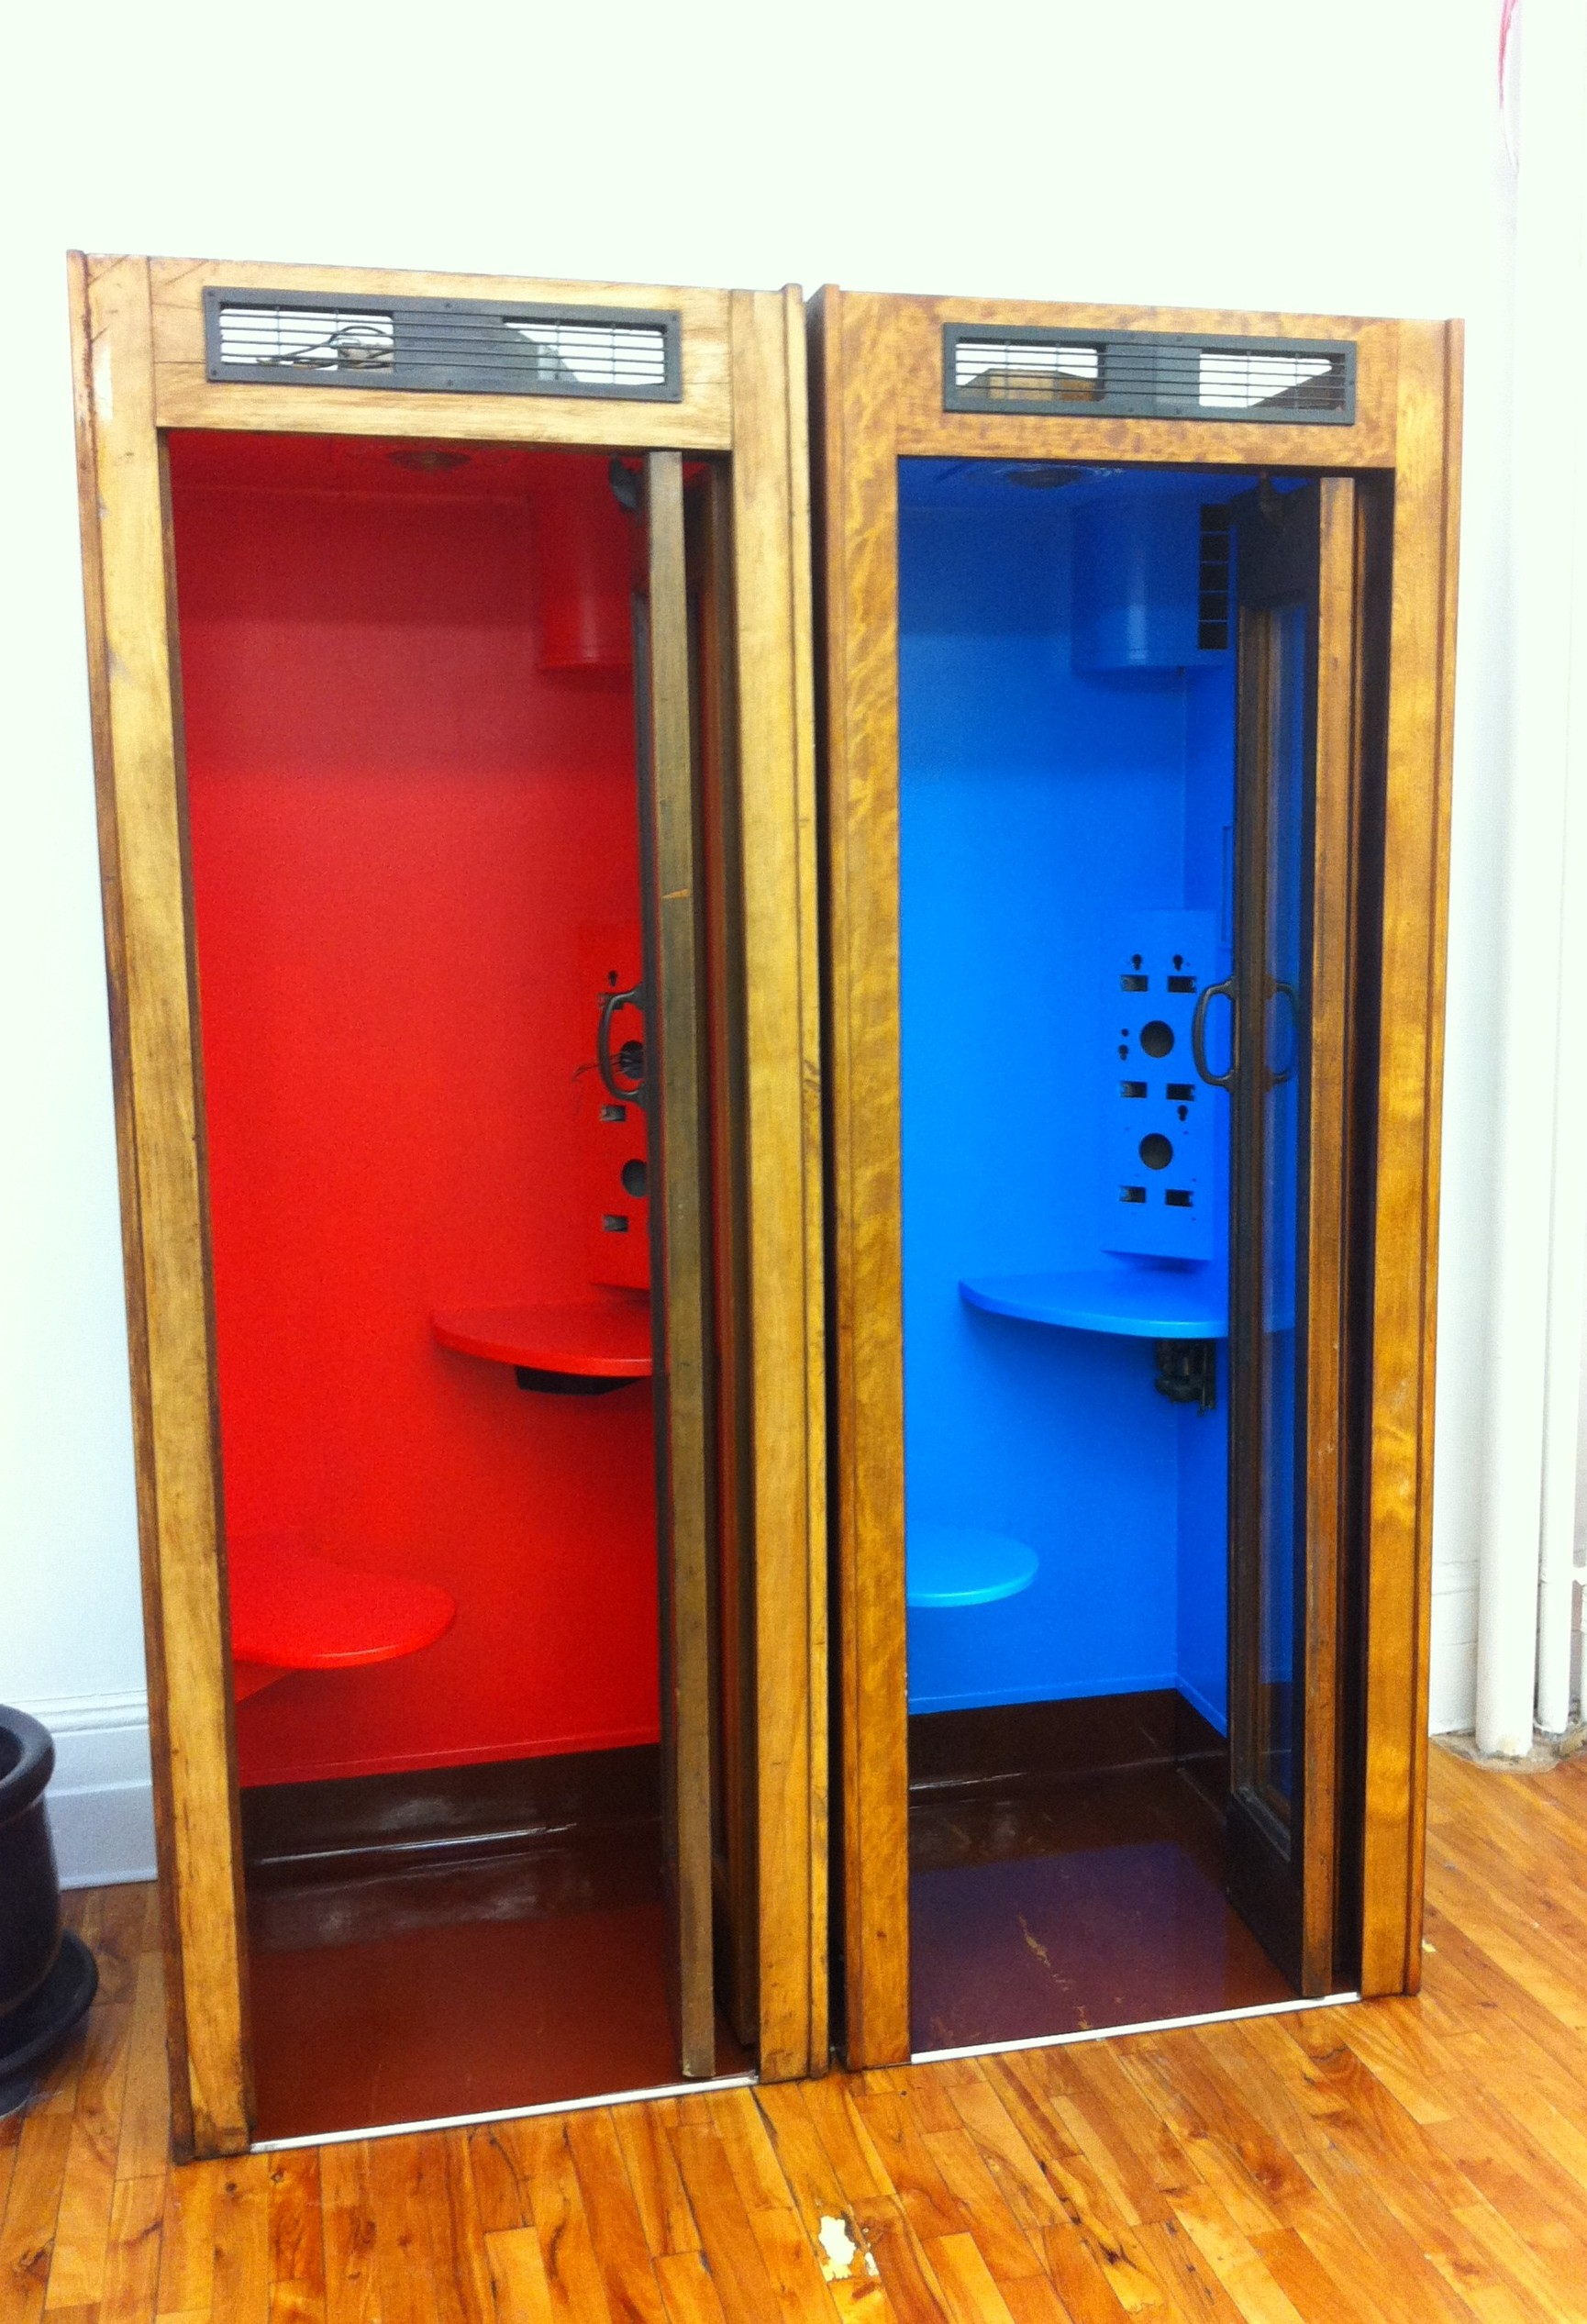 An AFTER shot of two vintage phone booths painted out in red and blue